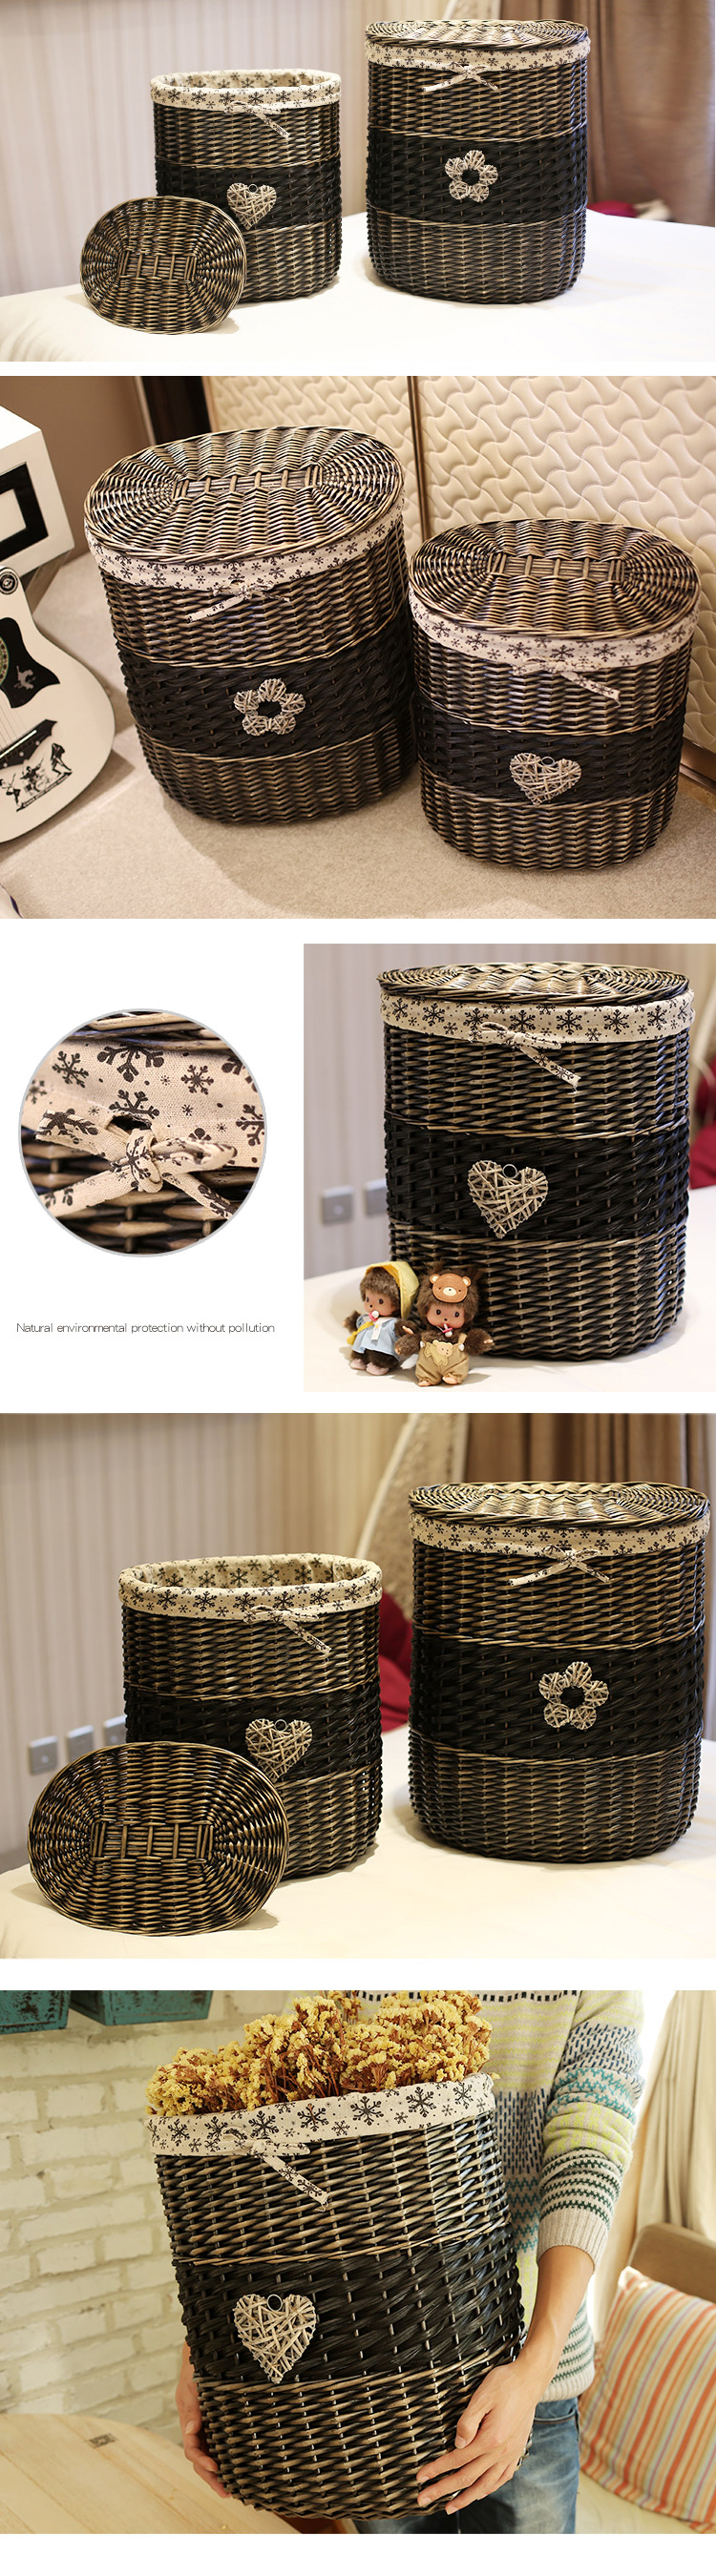 China supplier wholesale wicker laundry hamper basket with lid